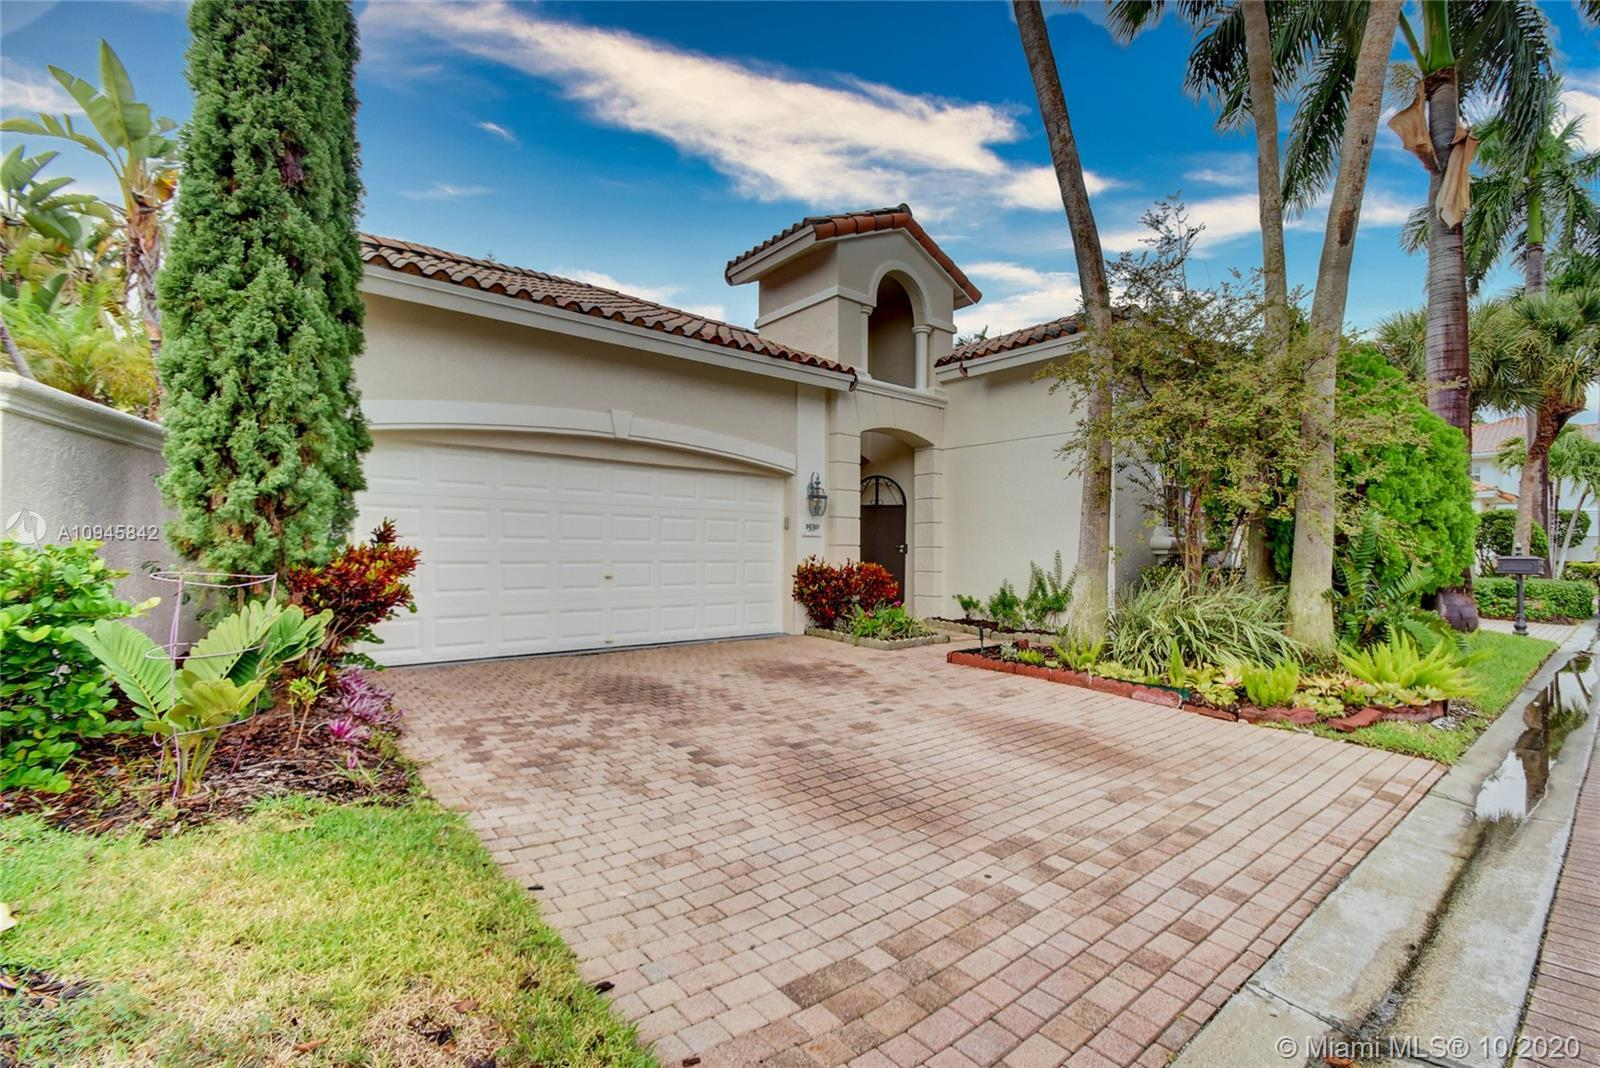 Amazing opportunity to live in the exclusive gated estate at Harbor Islands, located one mile east o